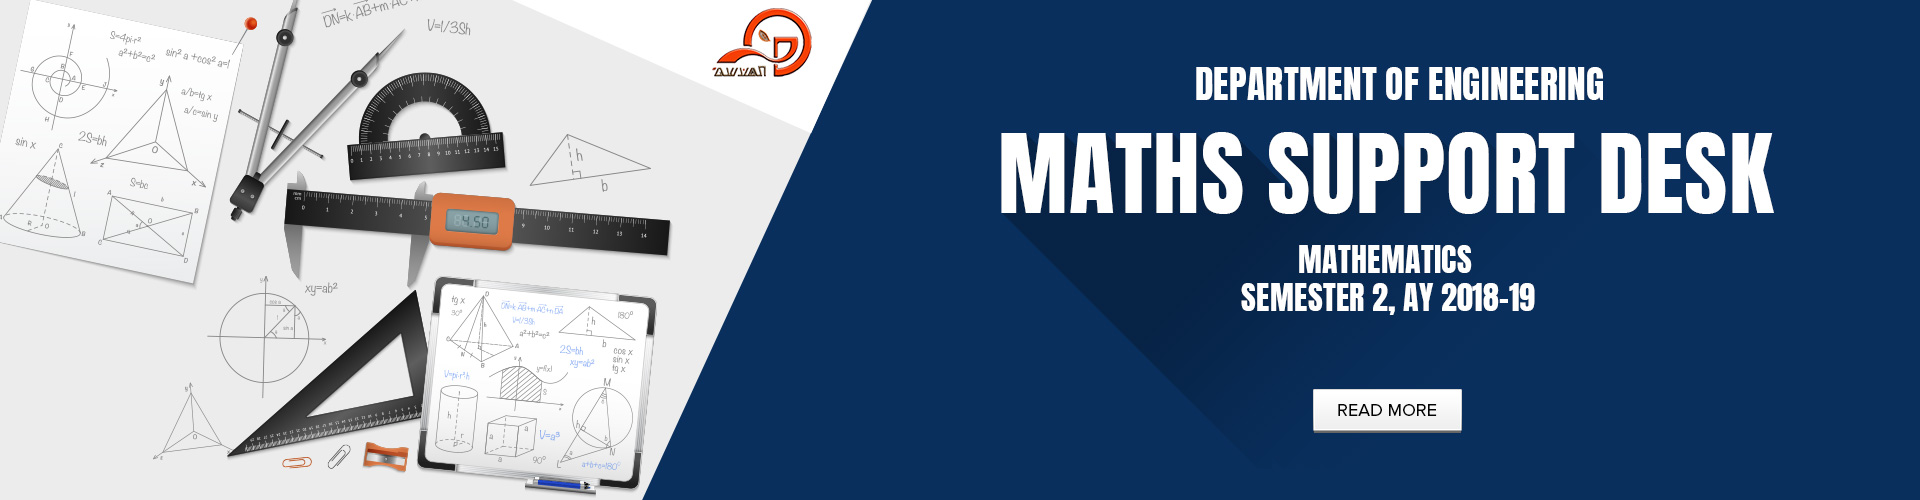 Department of Engineering - Maths Support Desk for Semester 2, AY 2018-19